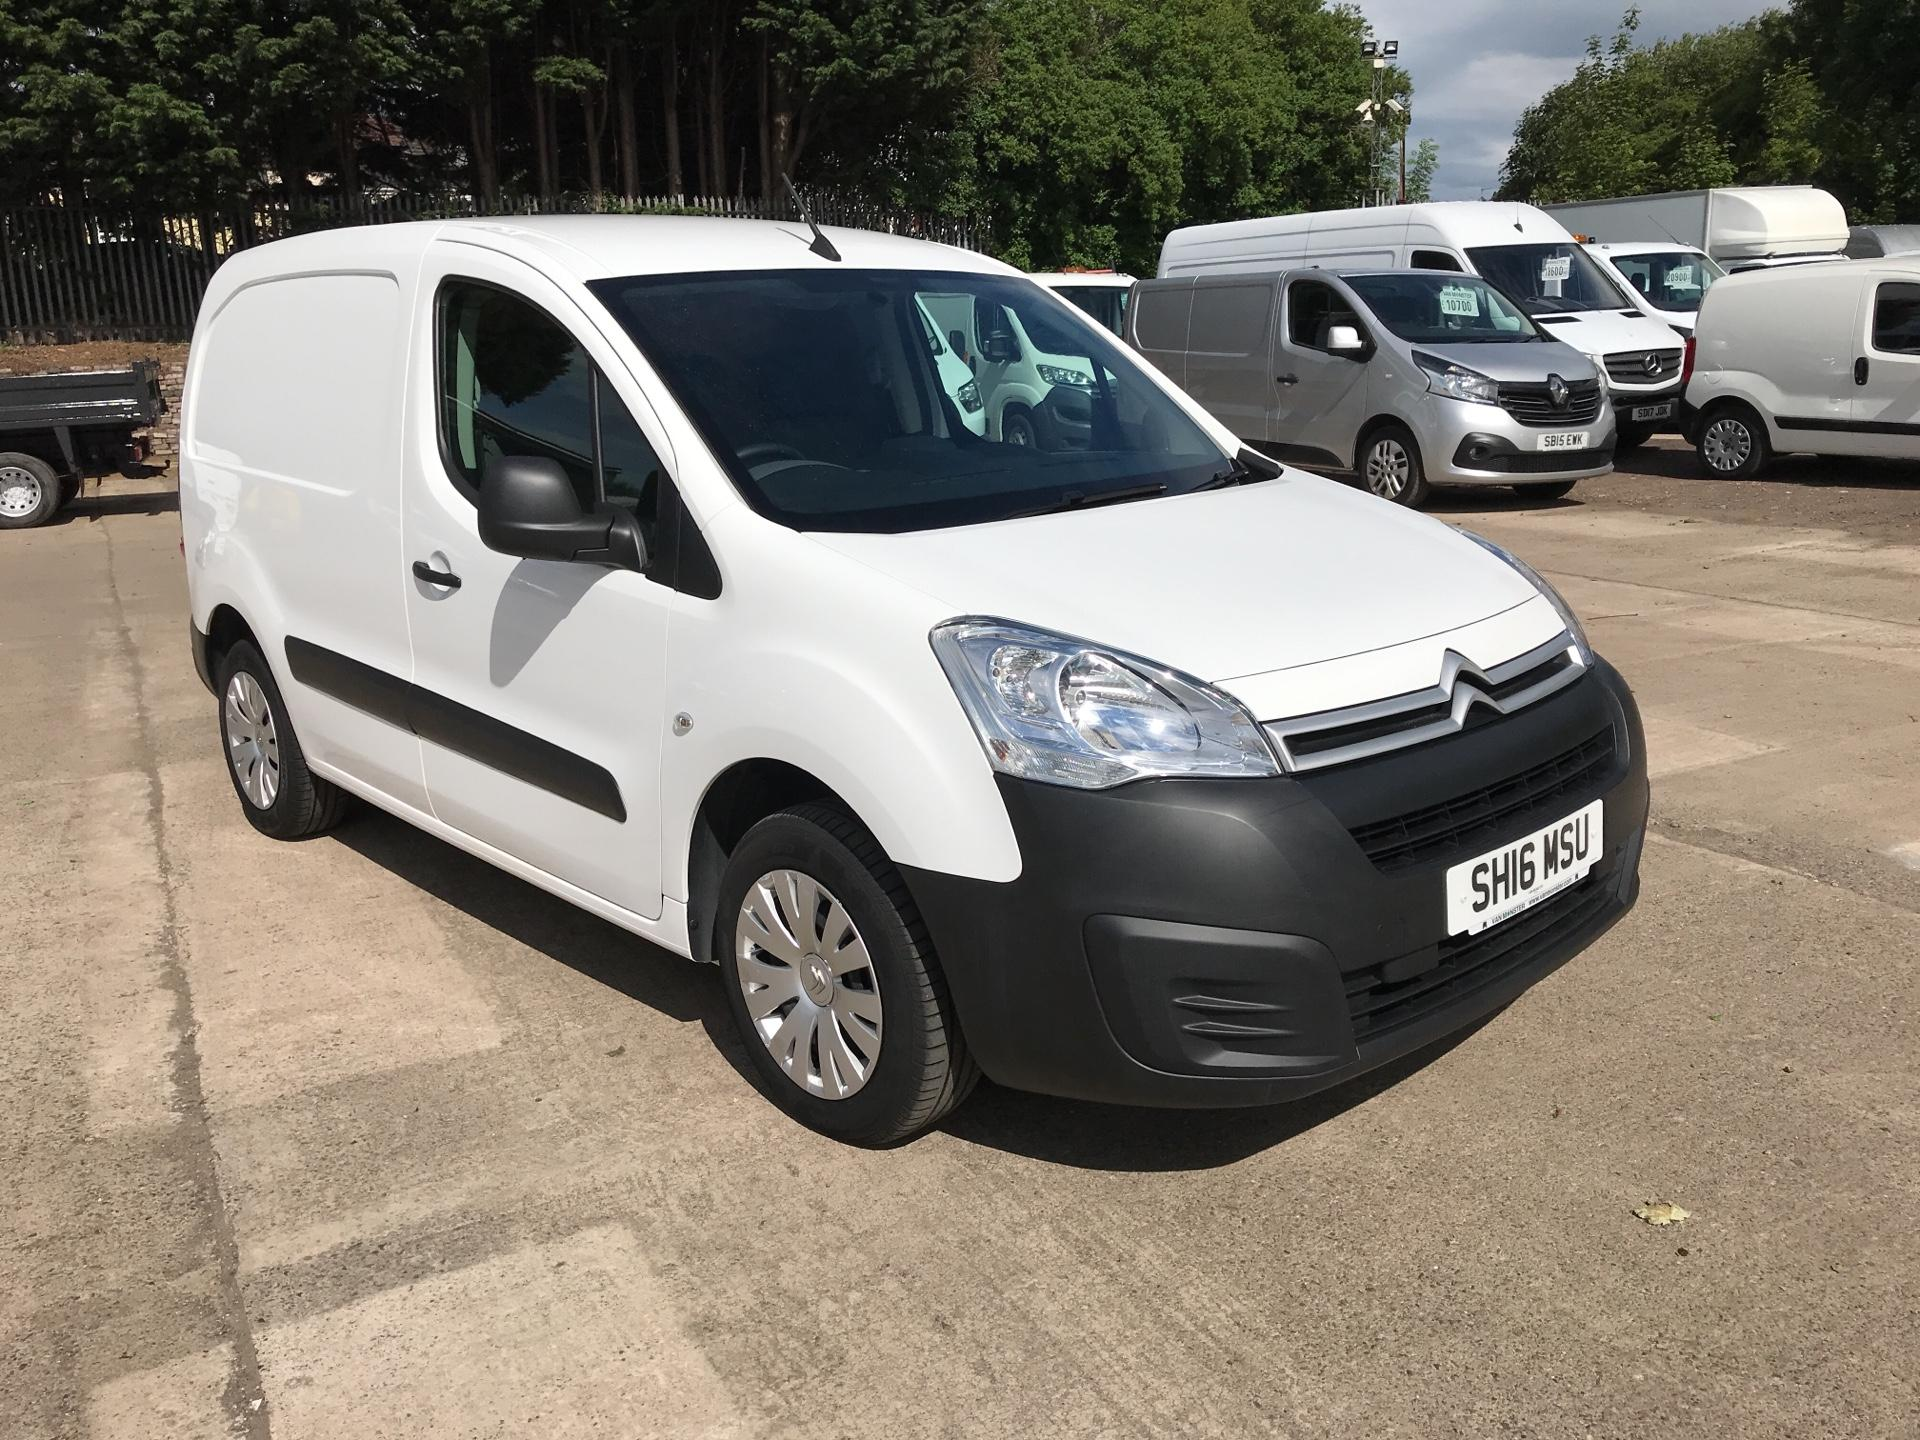 2016 Citroen Berlingo L1 DIESEL 1.6 HDI 625KG ENTERPRISE 75PS EURO 4/5 (SH16MSU)